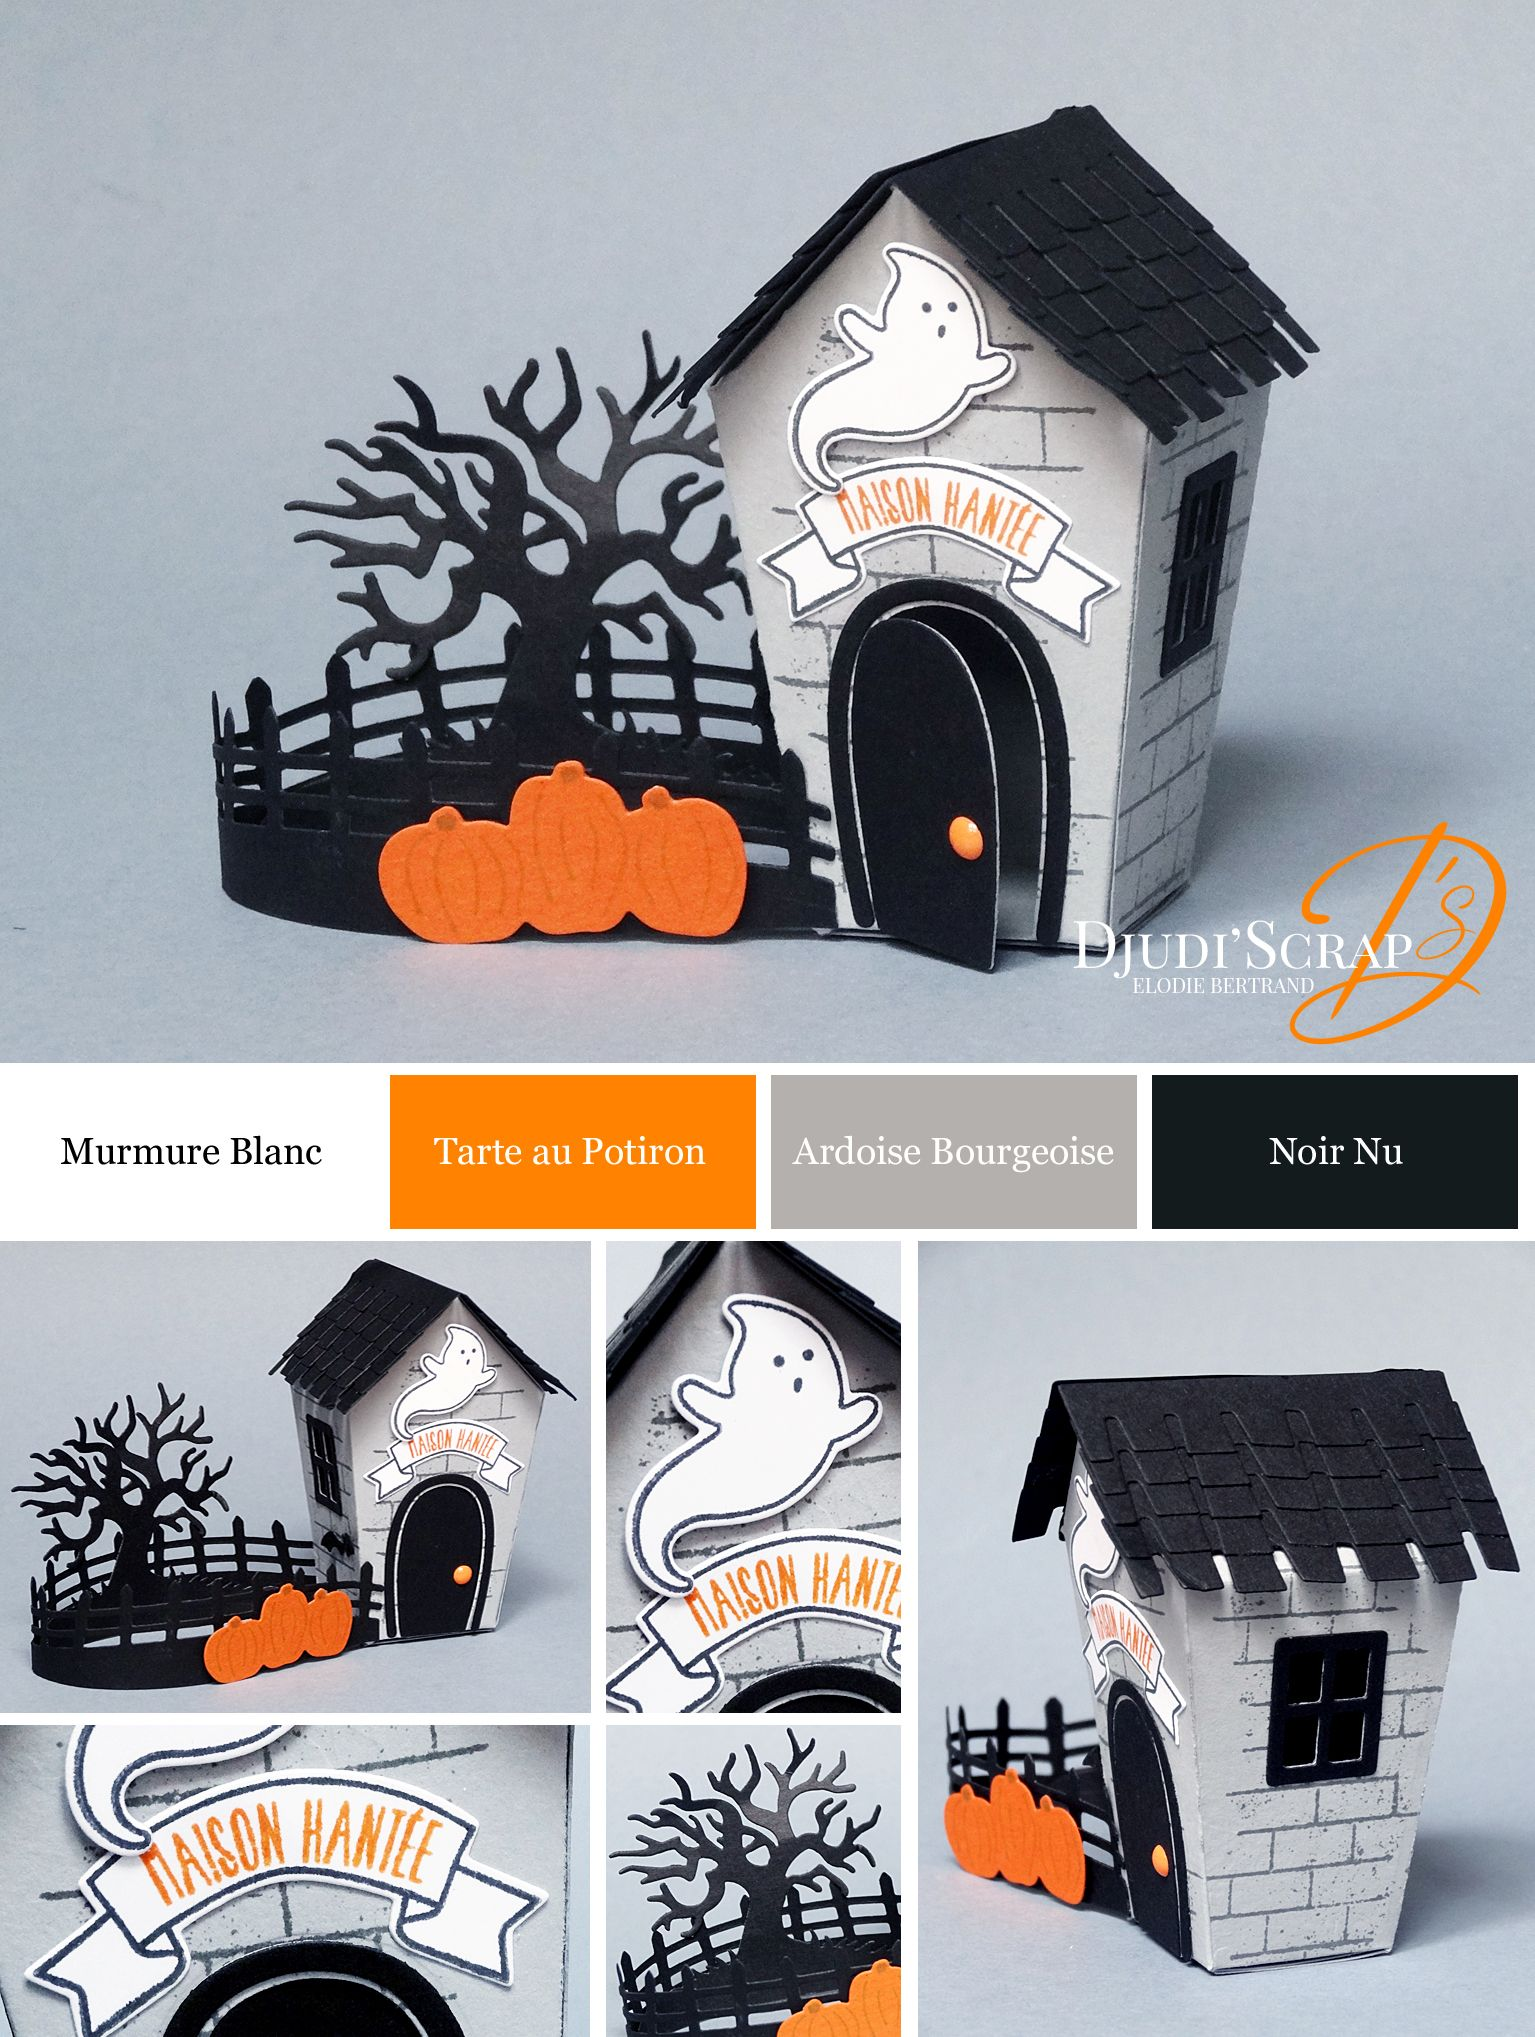 djudi 39 scrap stampin 39 up d coration petite maison hant e halloween thinlits doux foyer home. Black Bedroom Furniture Sets. Home Design Ideas